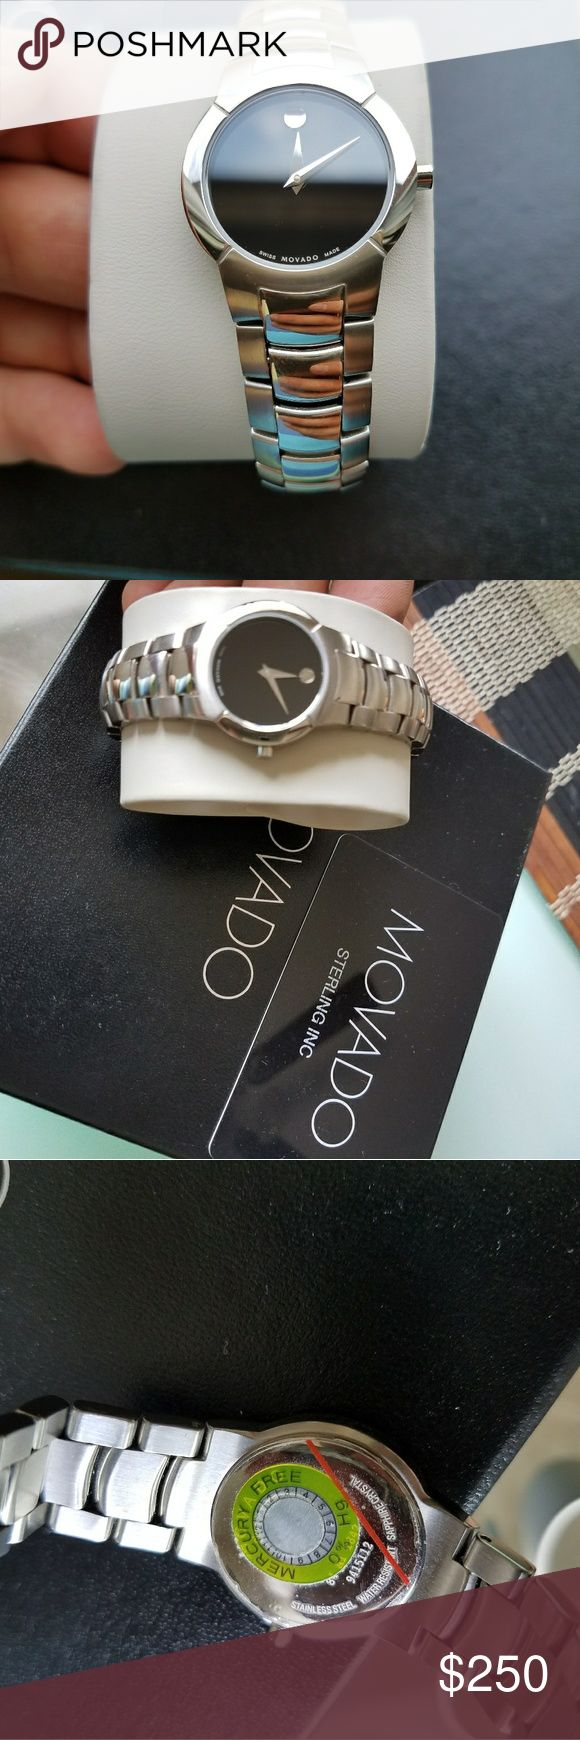 "Brand new Movado Museum Womens watch Never used. Authentic movado watch it has new battery. Still has plastic sticker on the back case and clasp. Comes with outter box and warranty card. Fits 7"" wrist. It may have some very light scratches on the band from moving around.   Payp vinted or ven mo $200, 220 on Mer. Movado Accessories Watches"